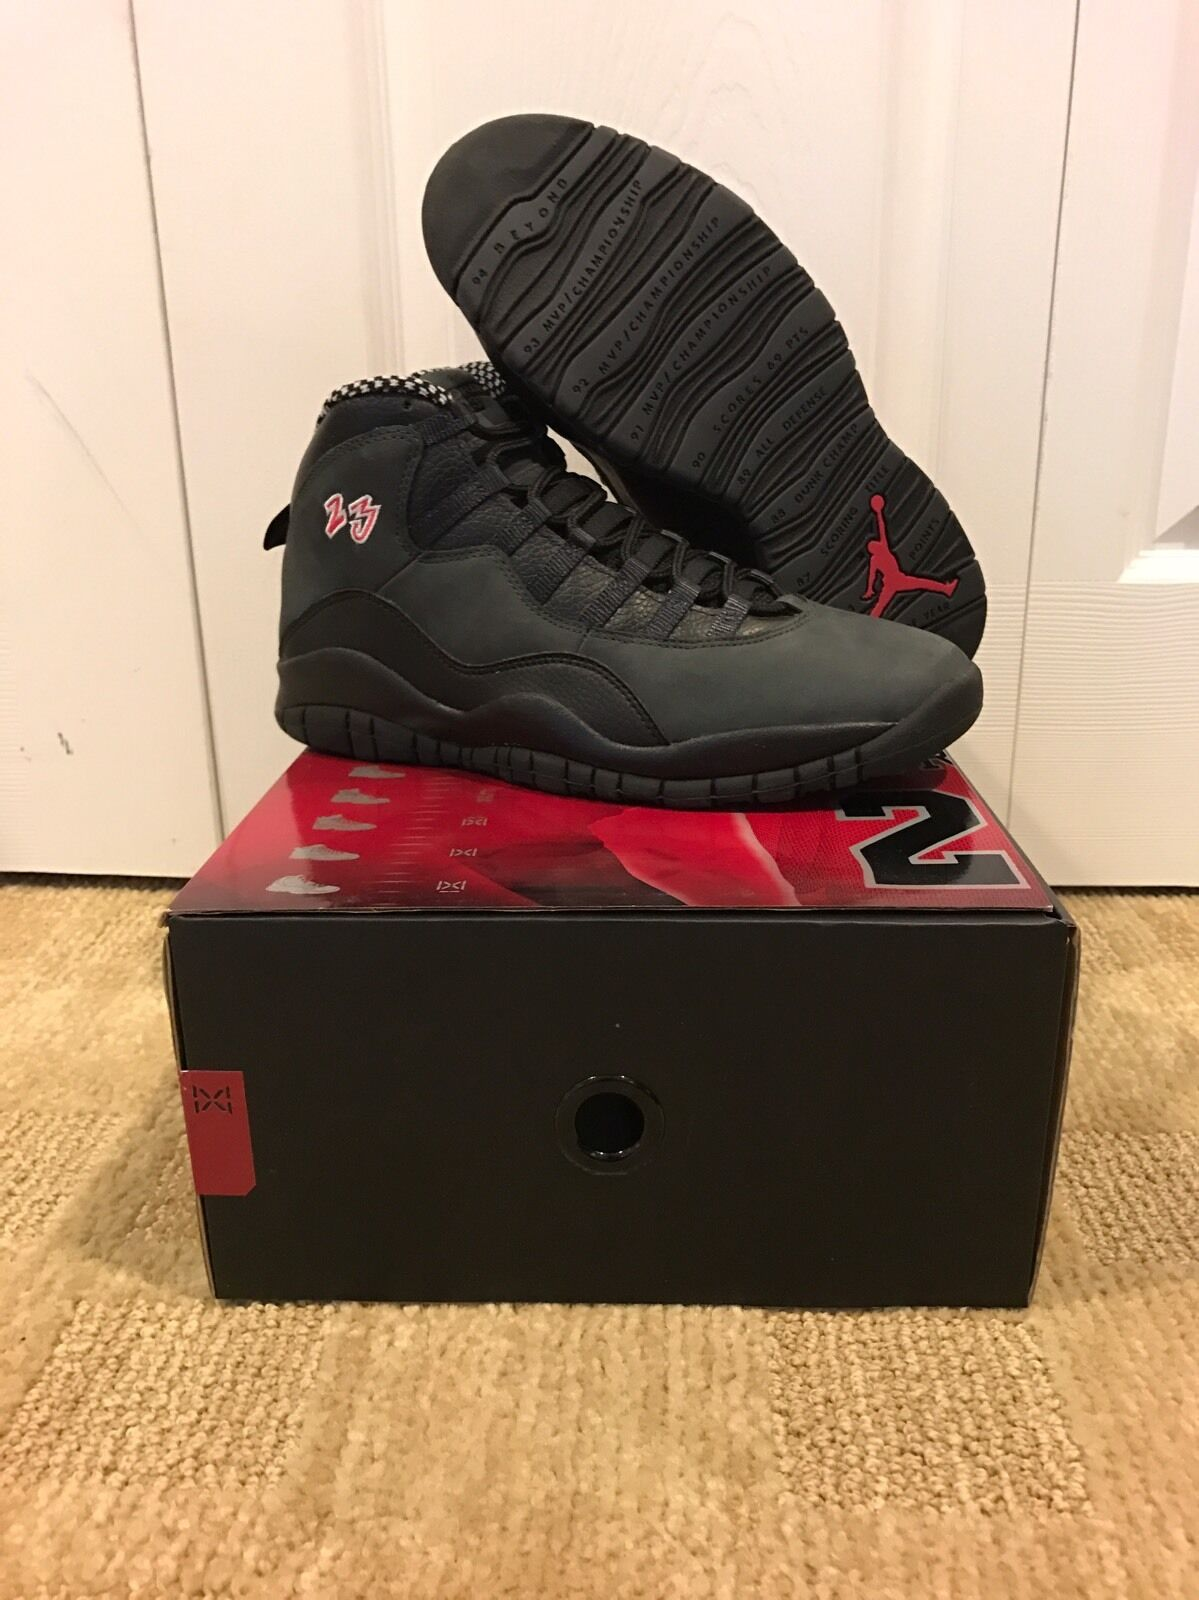 Jordan X Shadow CDP 10.5 DS Countdown Pack 10 XI Space Jam